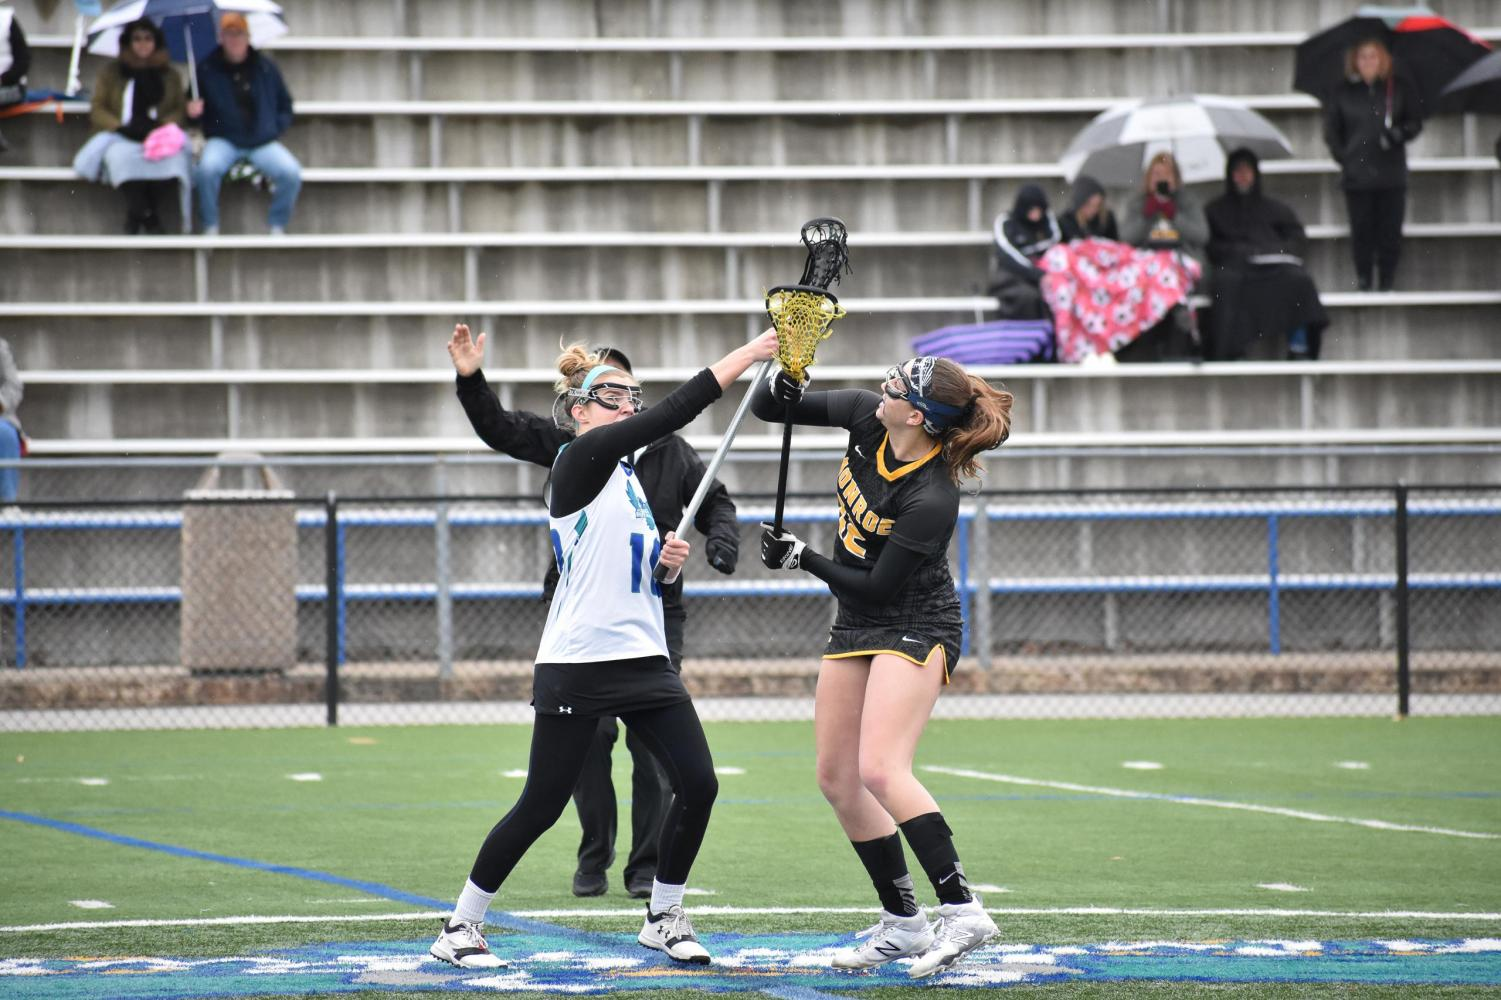 Defender Kara Steir (left), attack Caitlyn Shriver and goalie Deanna Valerien (right) prevent a Monroe player from scoring.